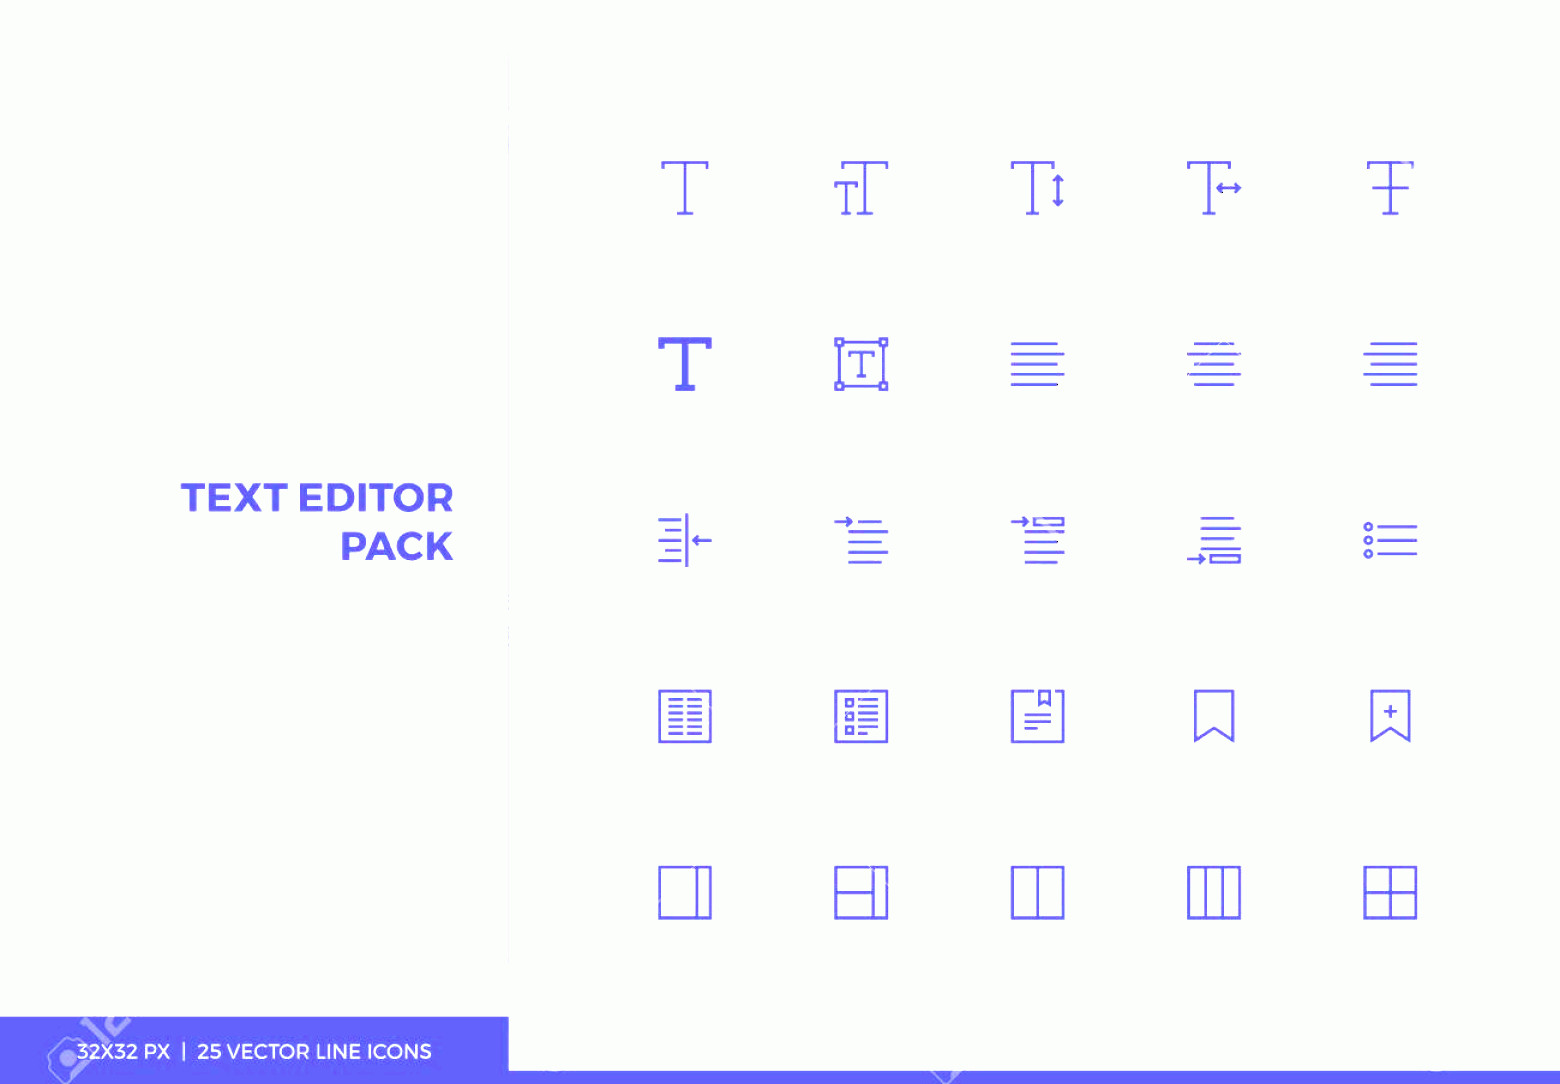 Editors Symbols In Vector: Photostock Vector Simple Line Icons Pack Of Text Editing Tools Word Processing Vector Pictogram Set For Mobile Phone U